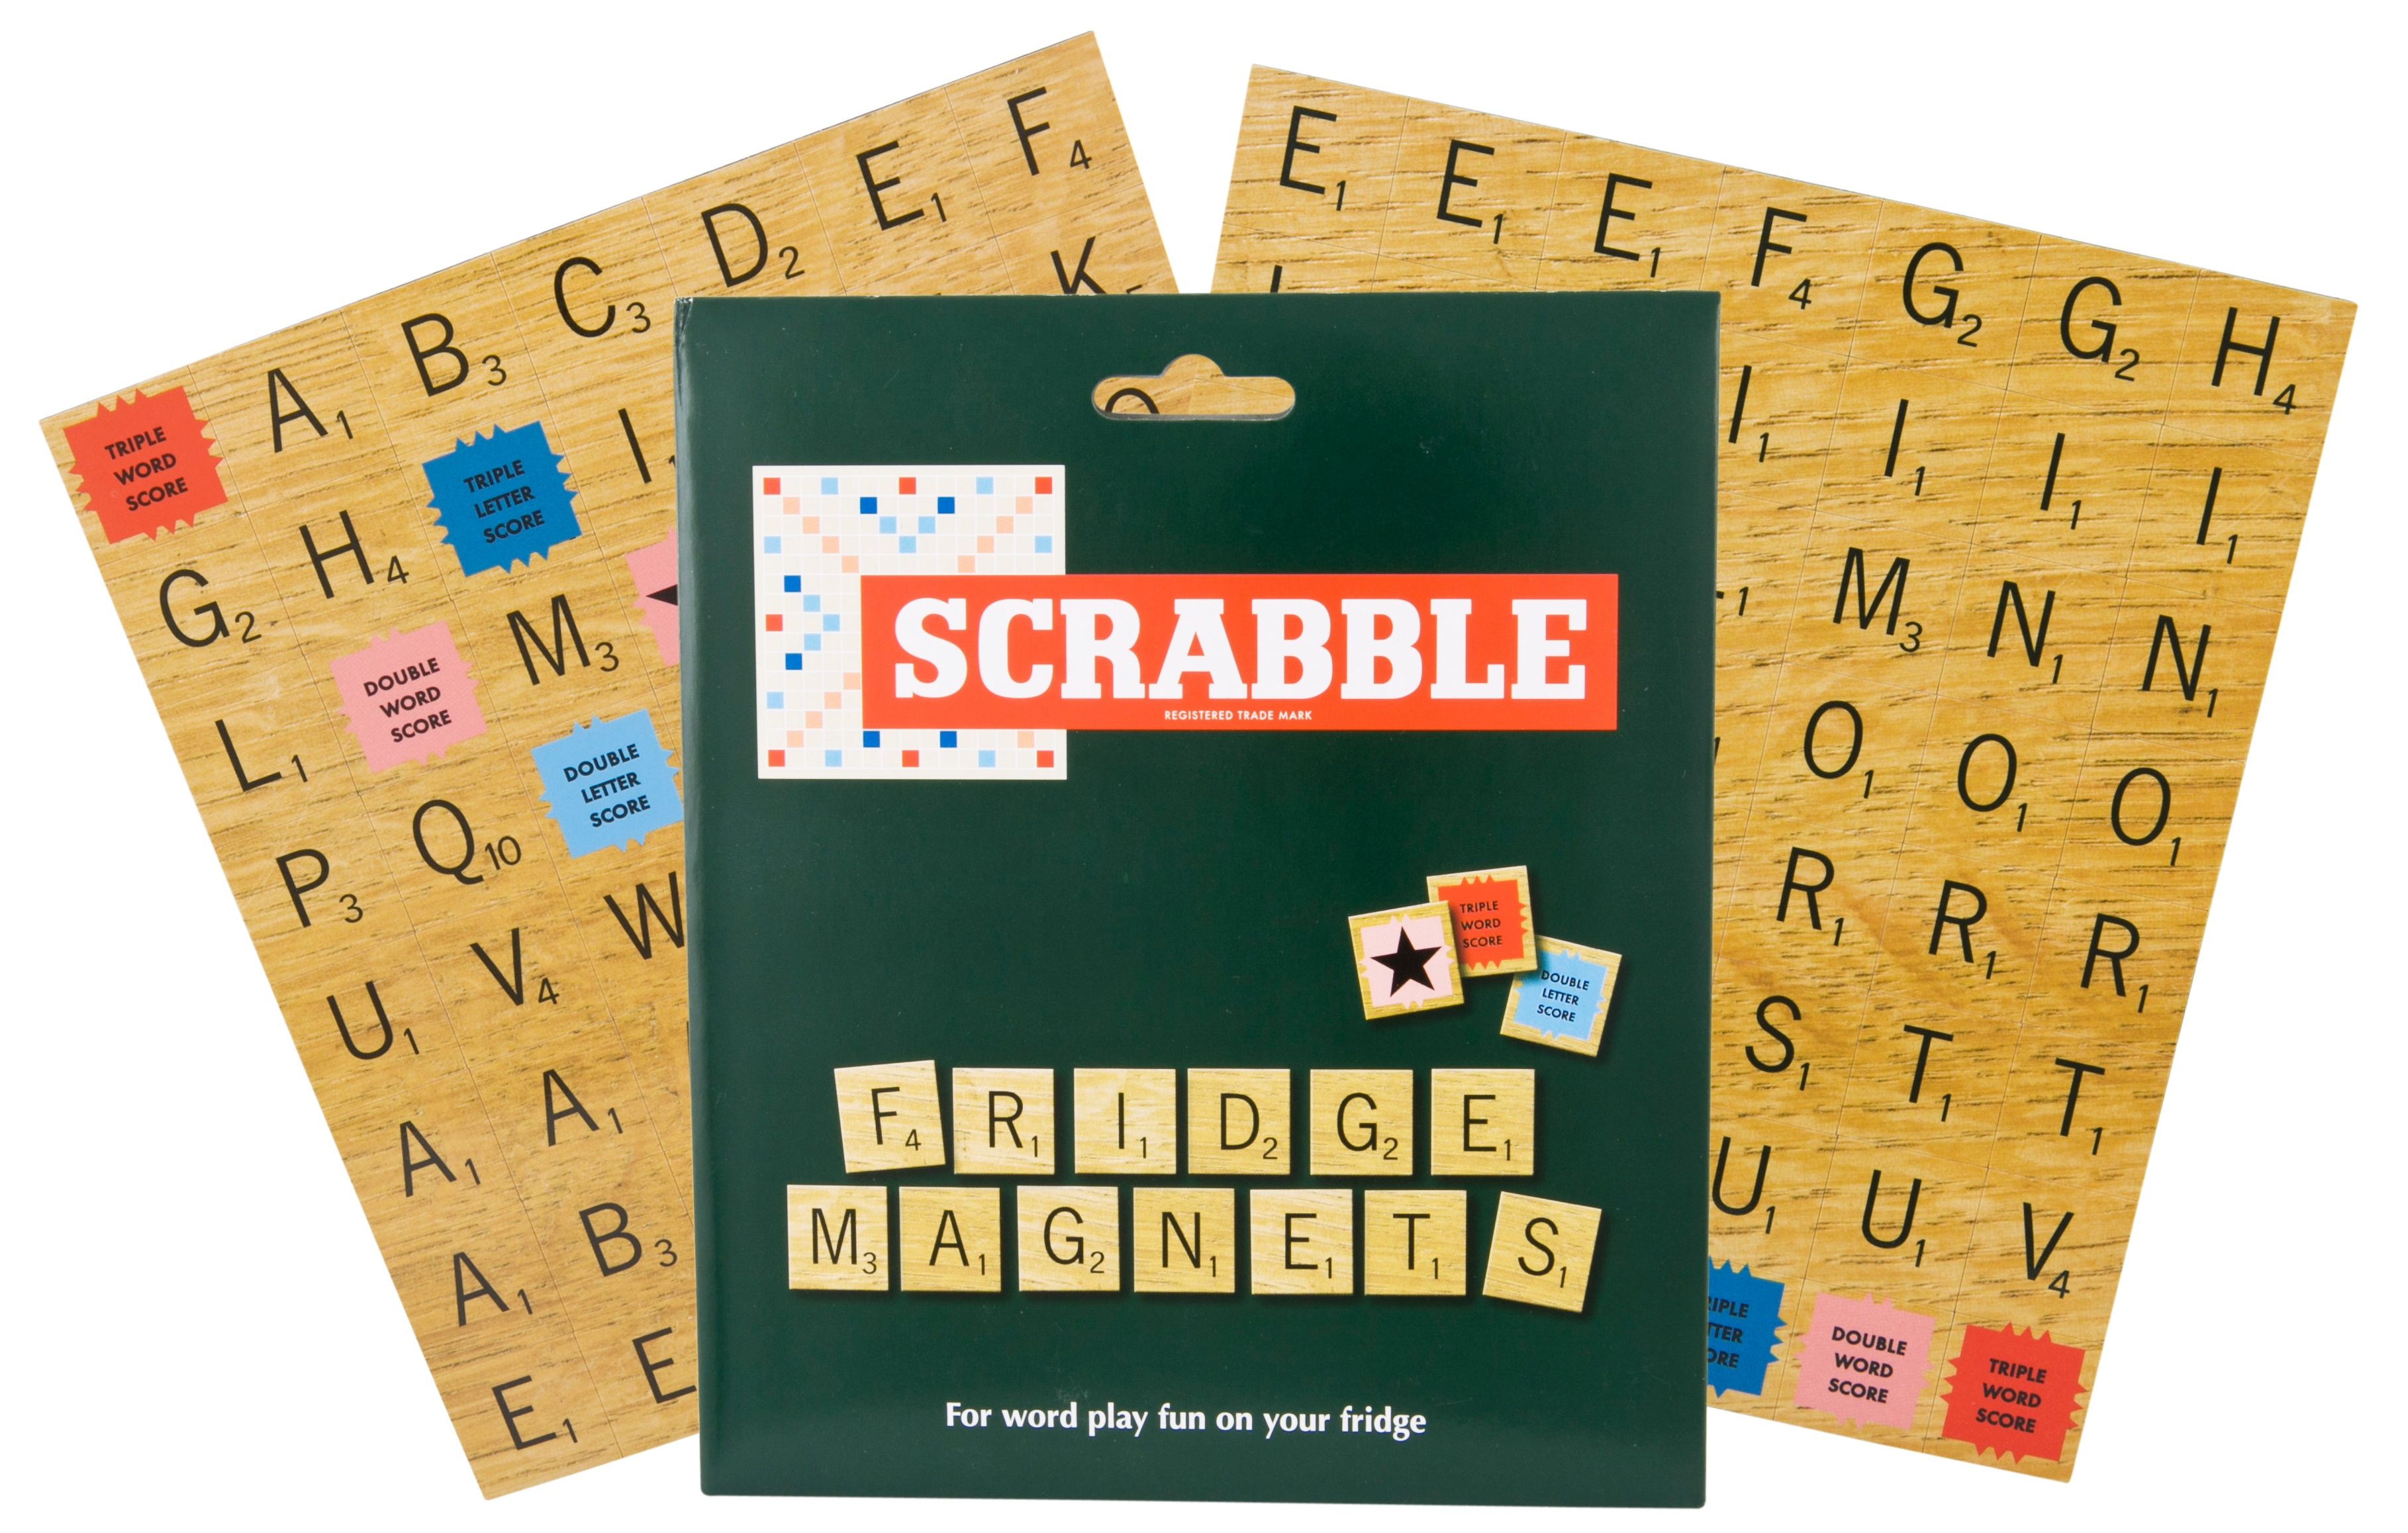 scrabble fridge magnets christmas gifts creatives.jpg